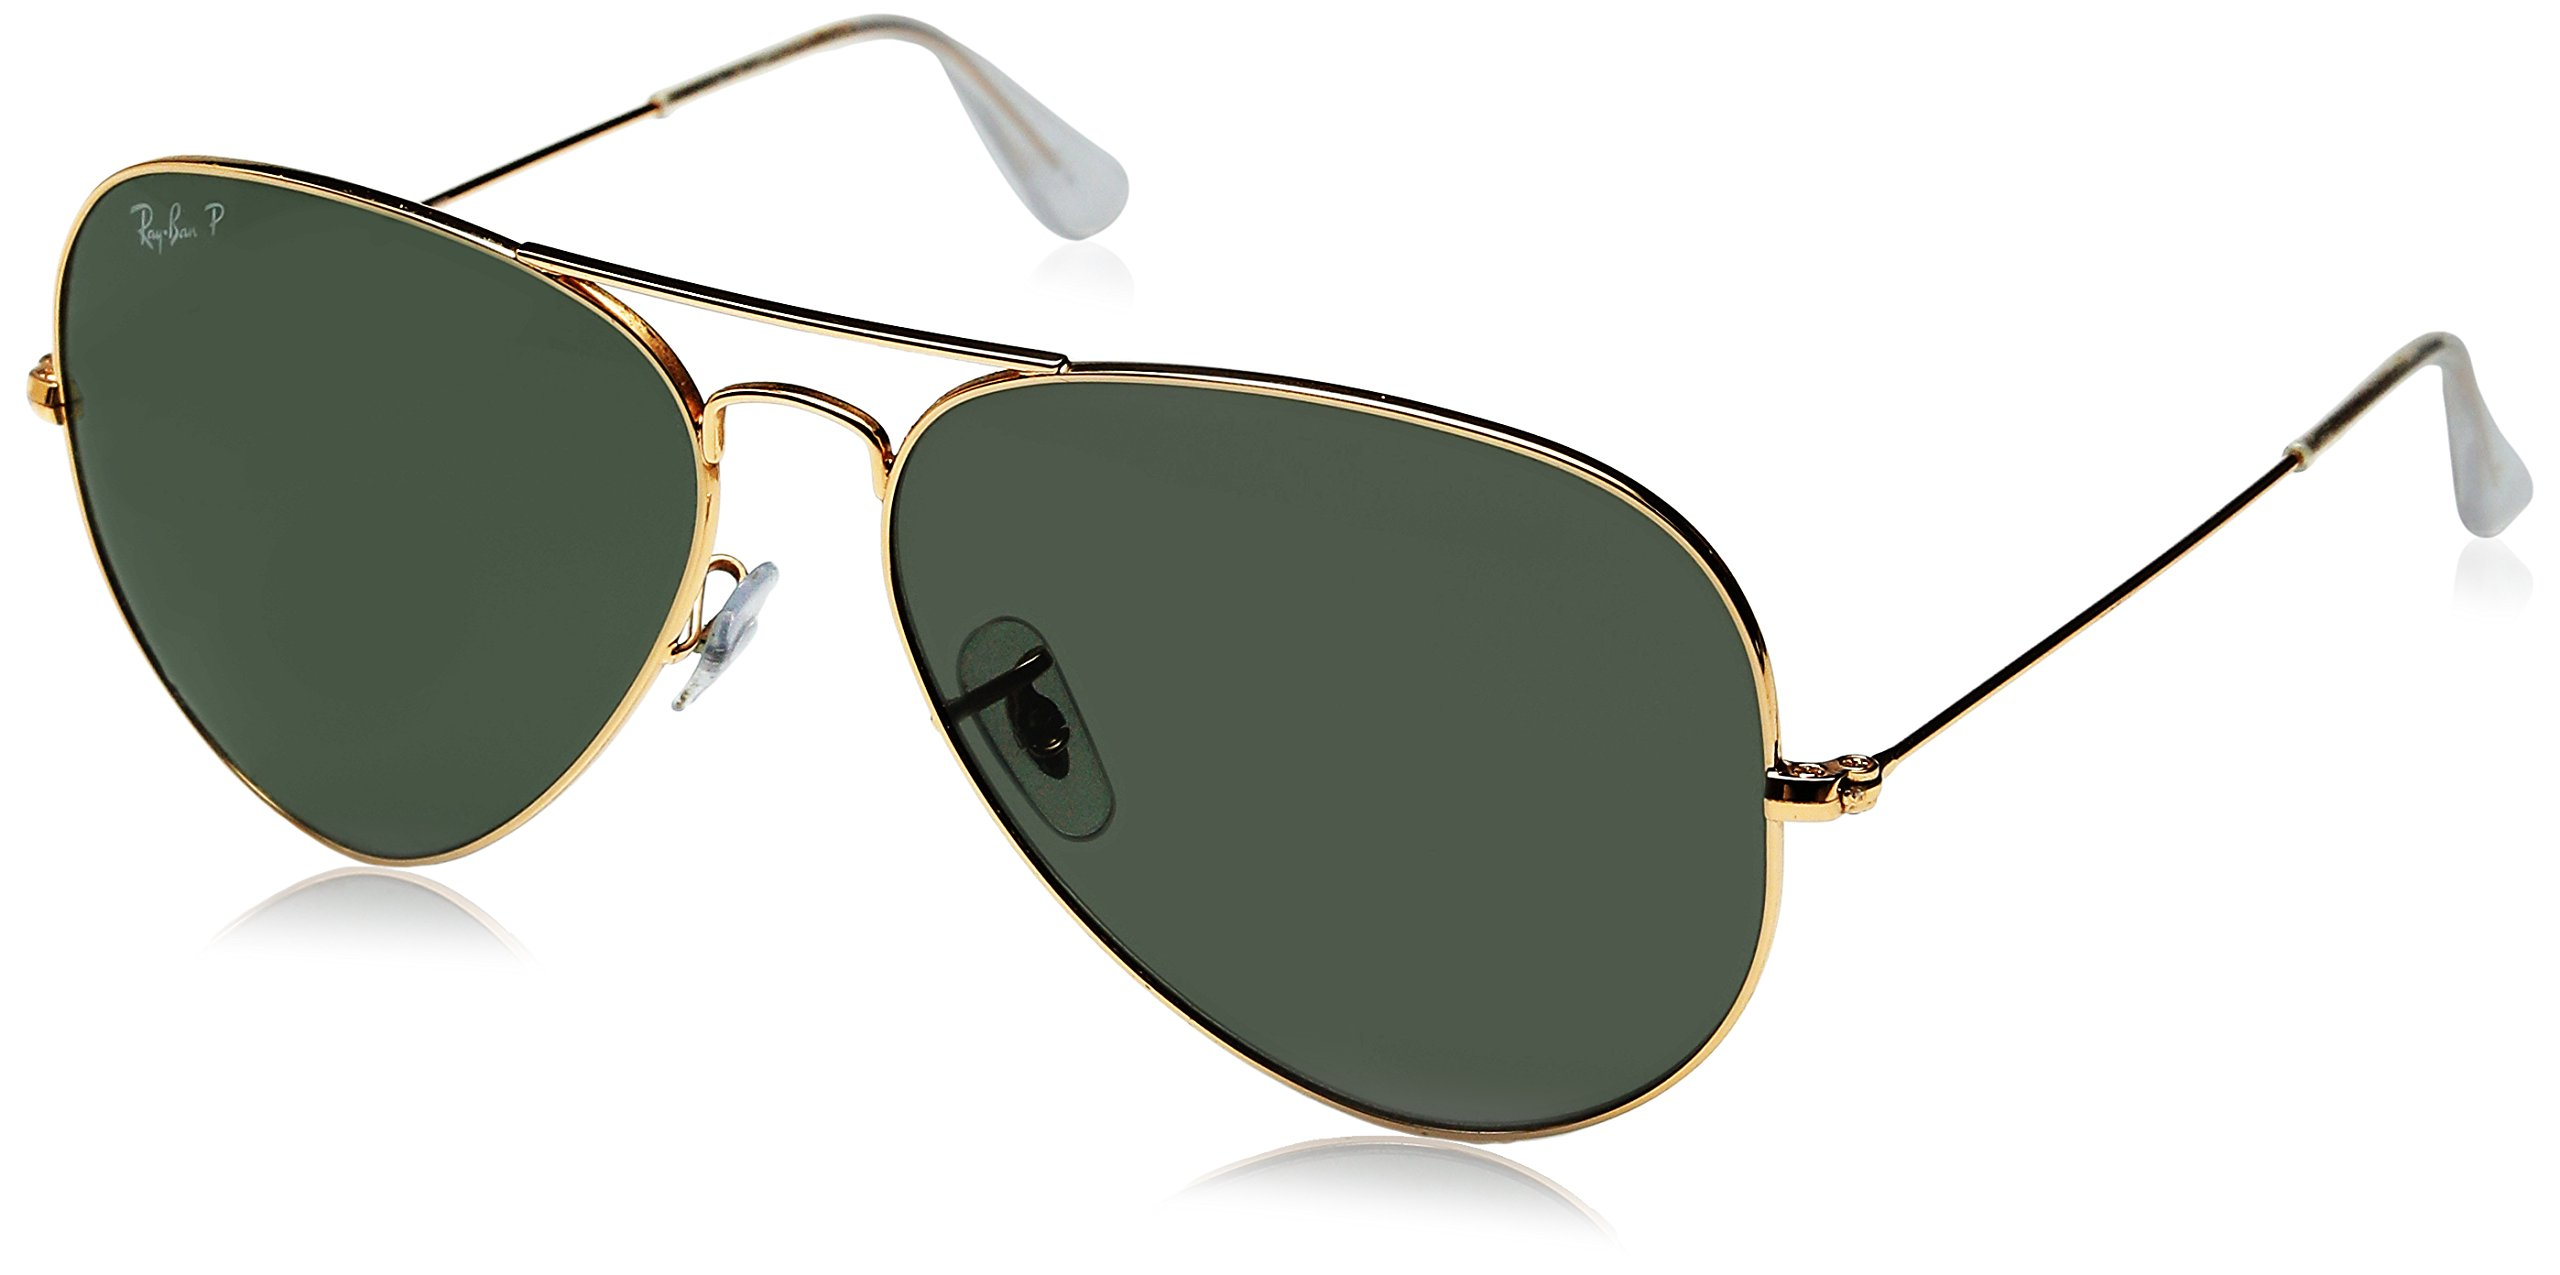 Ray-Ban 3025 Aviator Large Metal Non-Mirrored Polarized Sunglasses, Gold/Green, 62mm